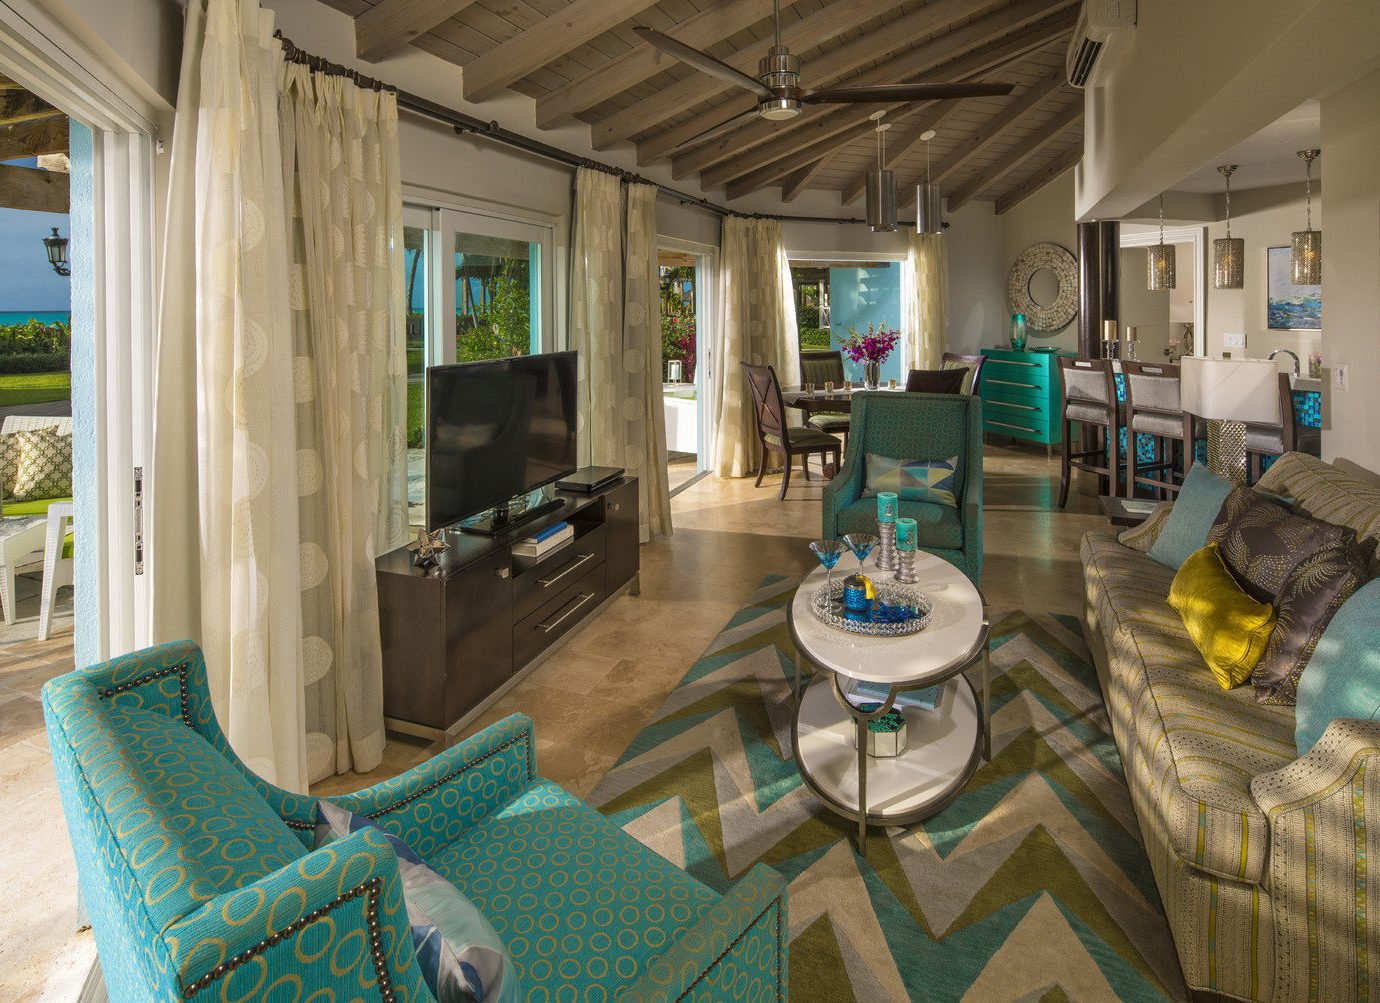 All-Inclusive Resorts caribbean Family Travel Hotels room living room interior design real estate estate home house